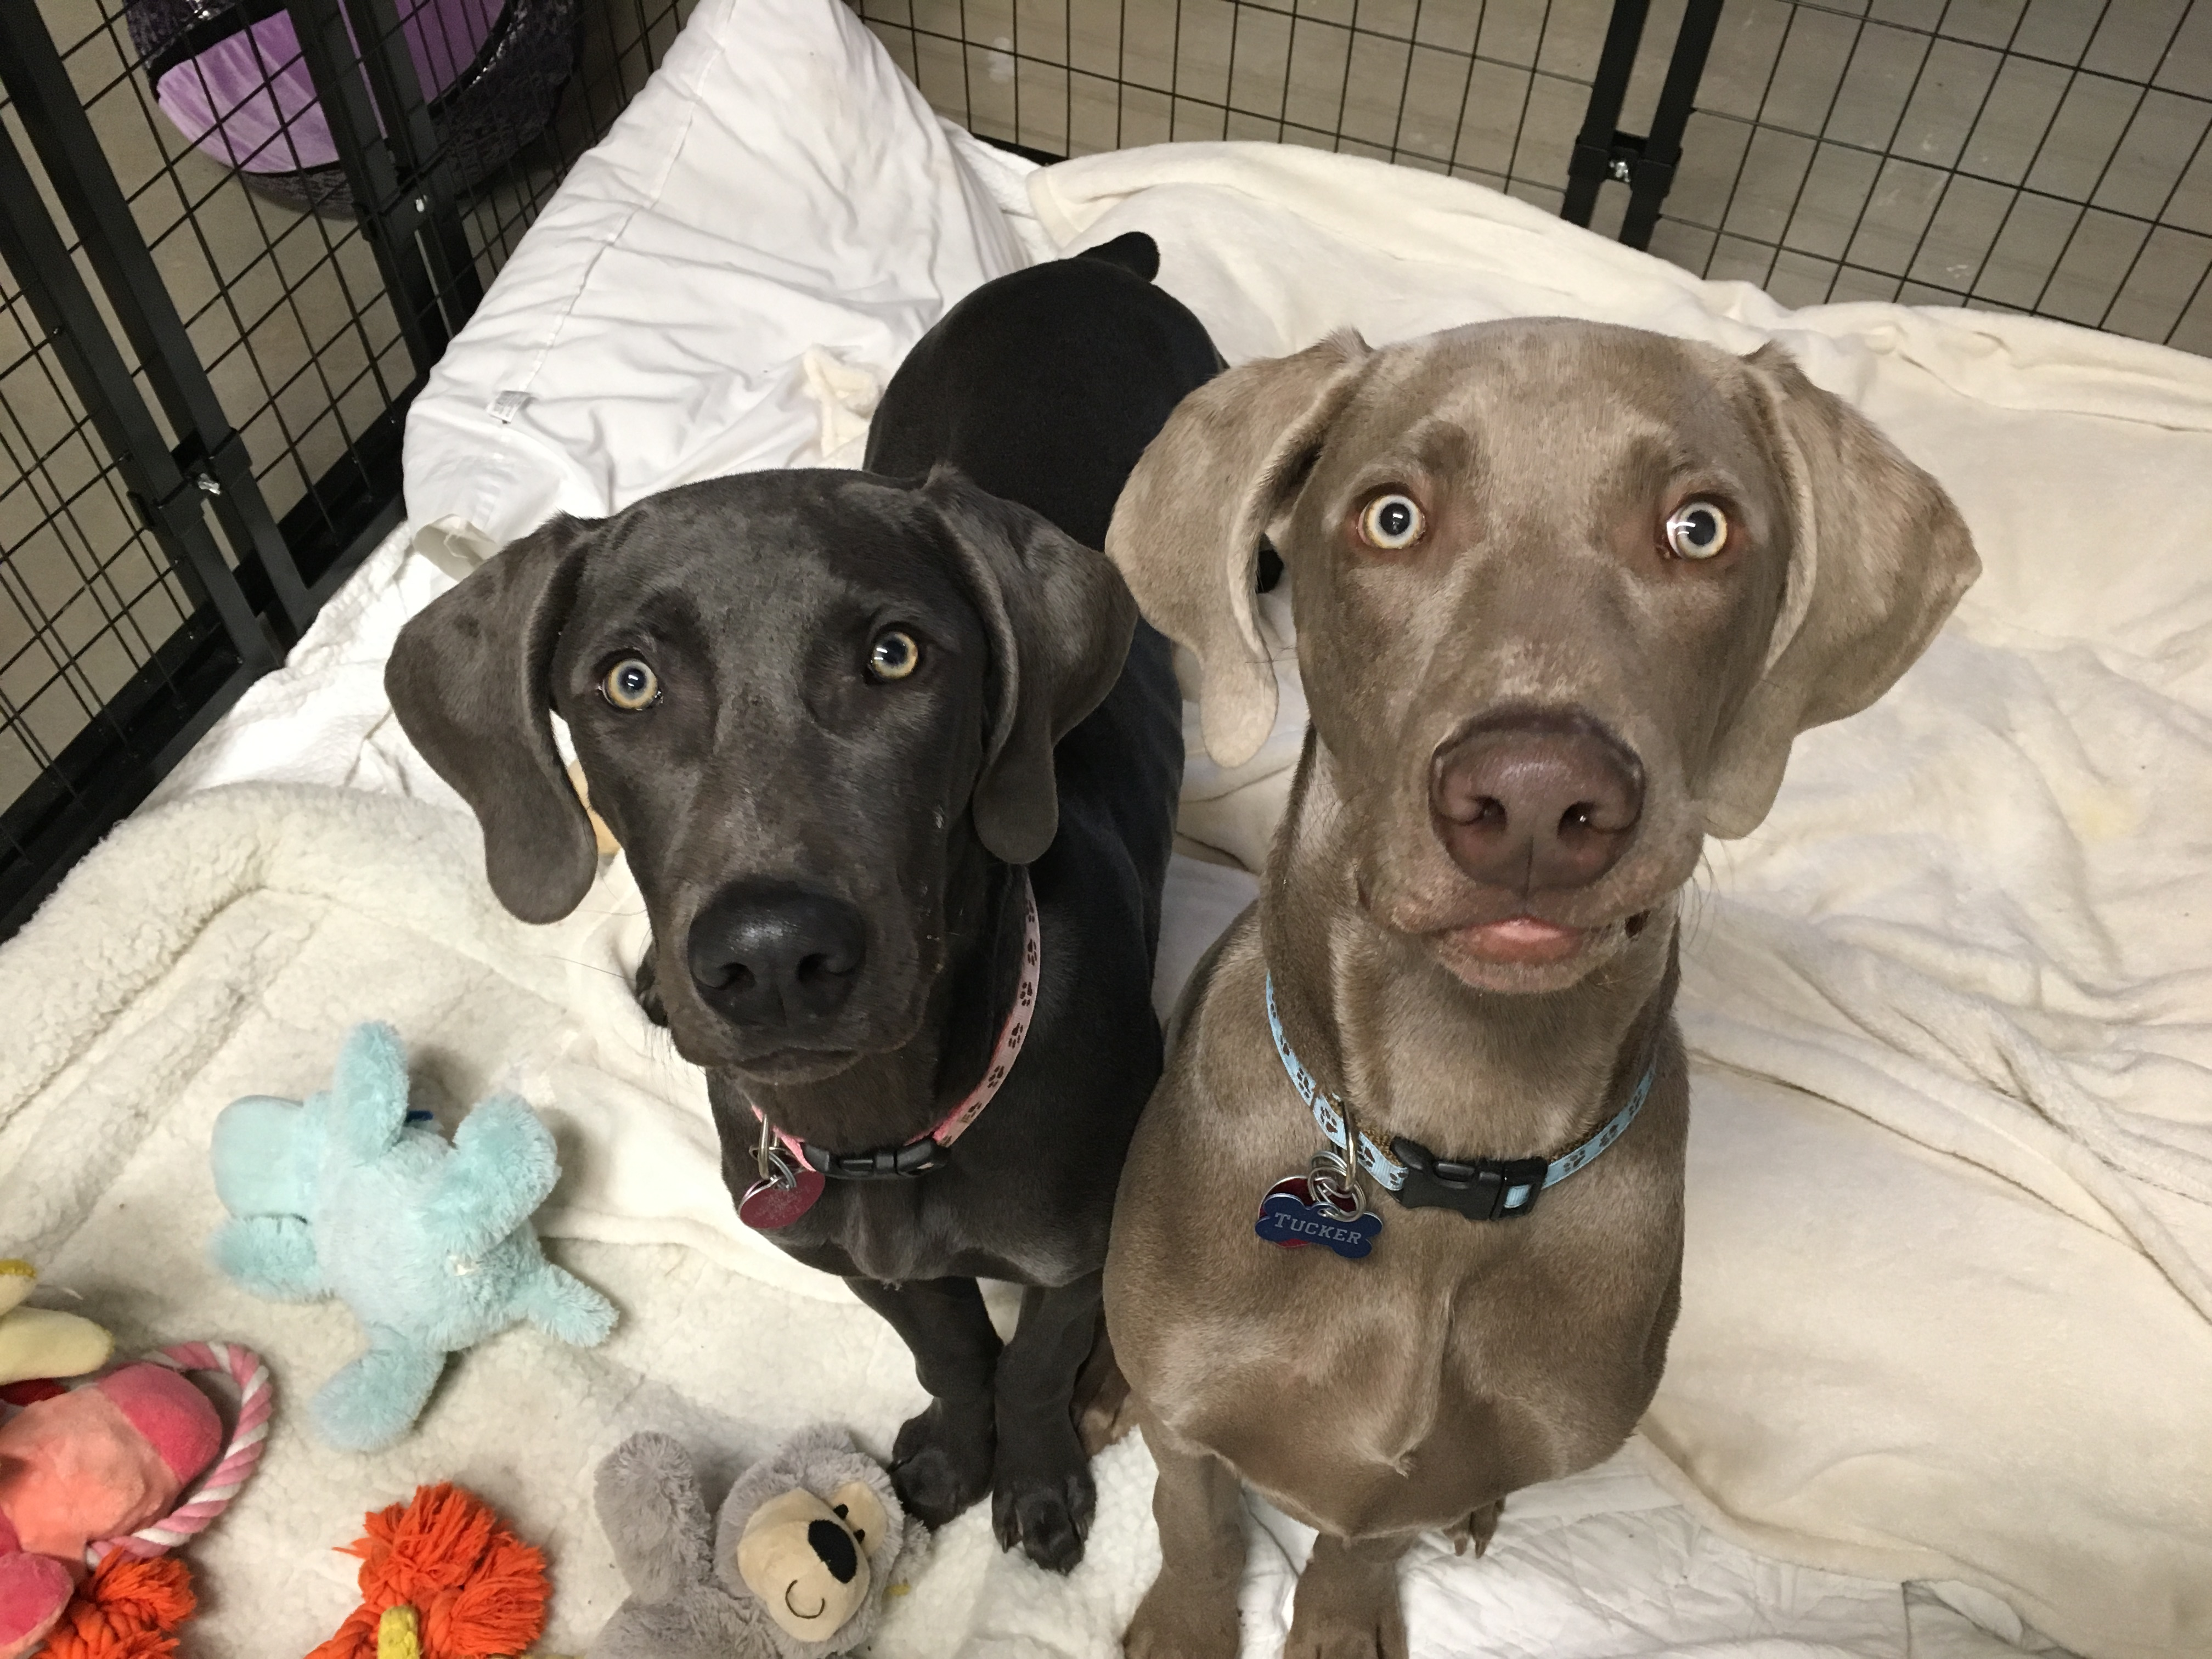 Great Puppy Training Tips Stop A Pair Of Weimaraners From Nipping And Mouthing Dog Gone Problems